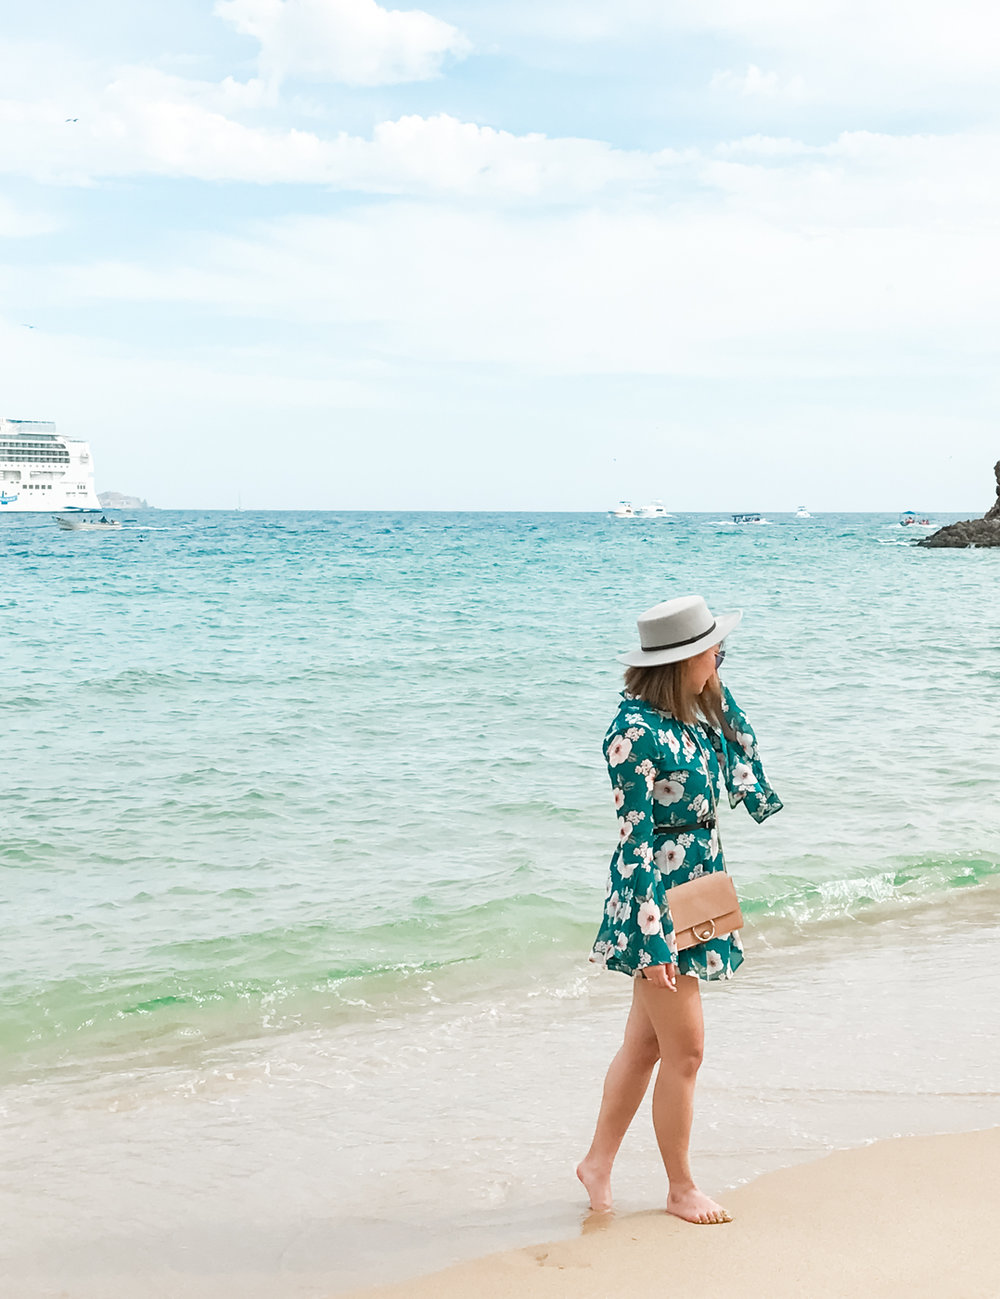 Forever 21 Floral Print Bell-Sleeved Dress & Sole Society Boater Hat | The Chic Diary